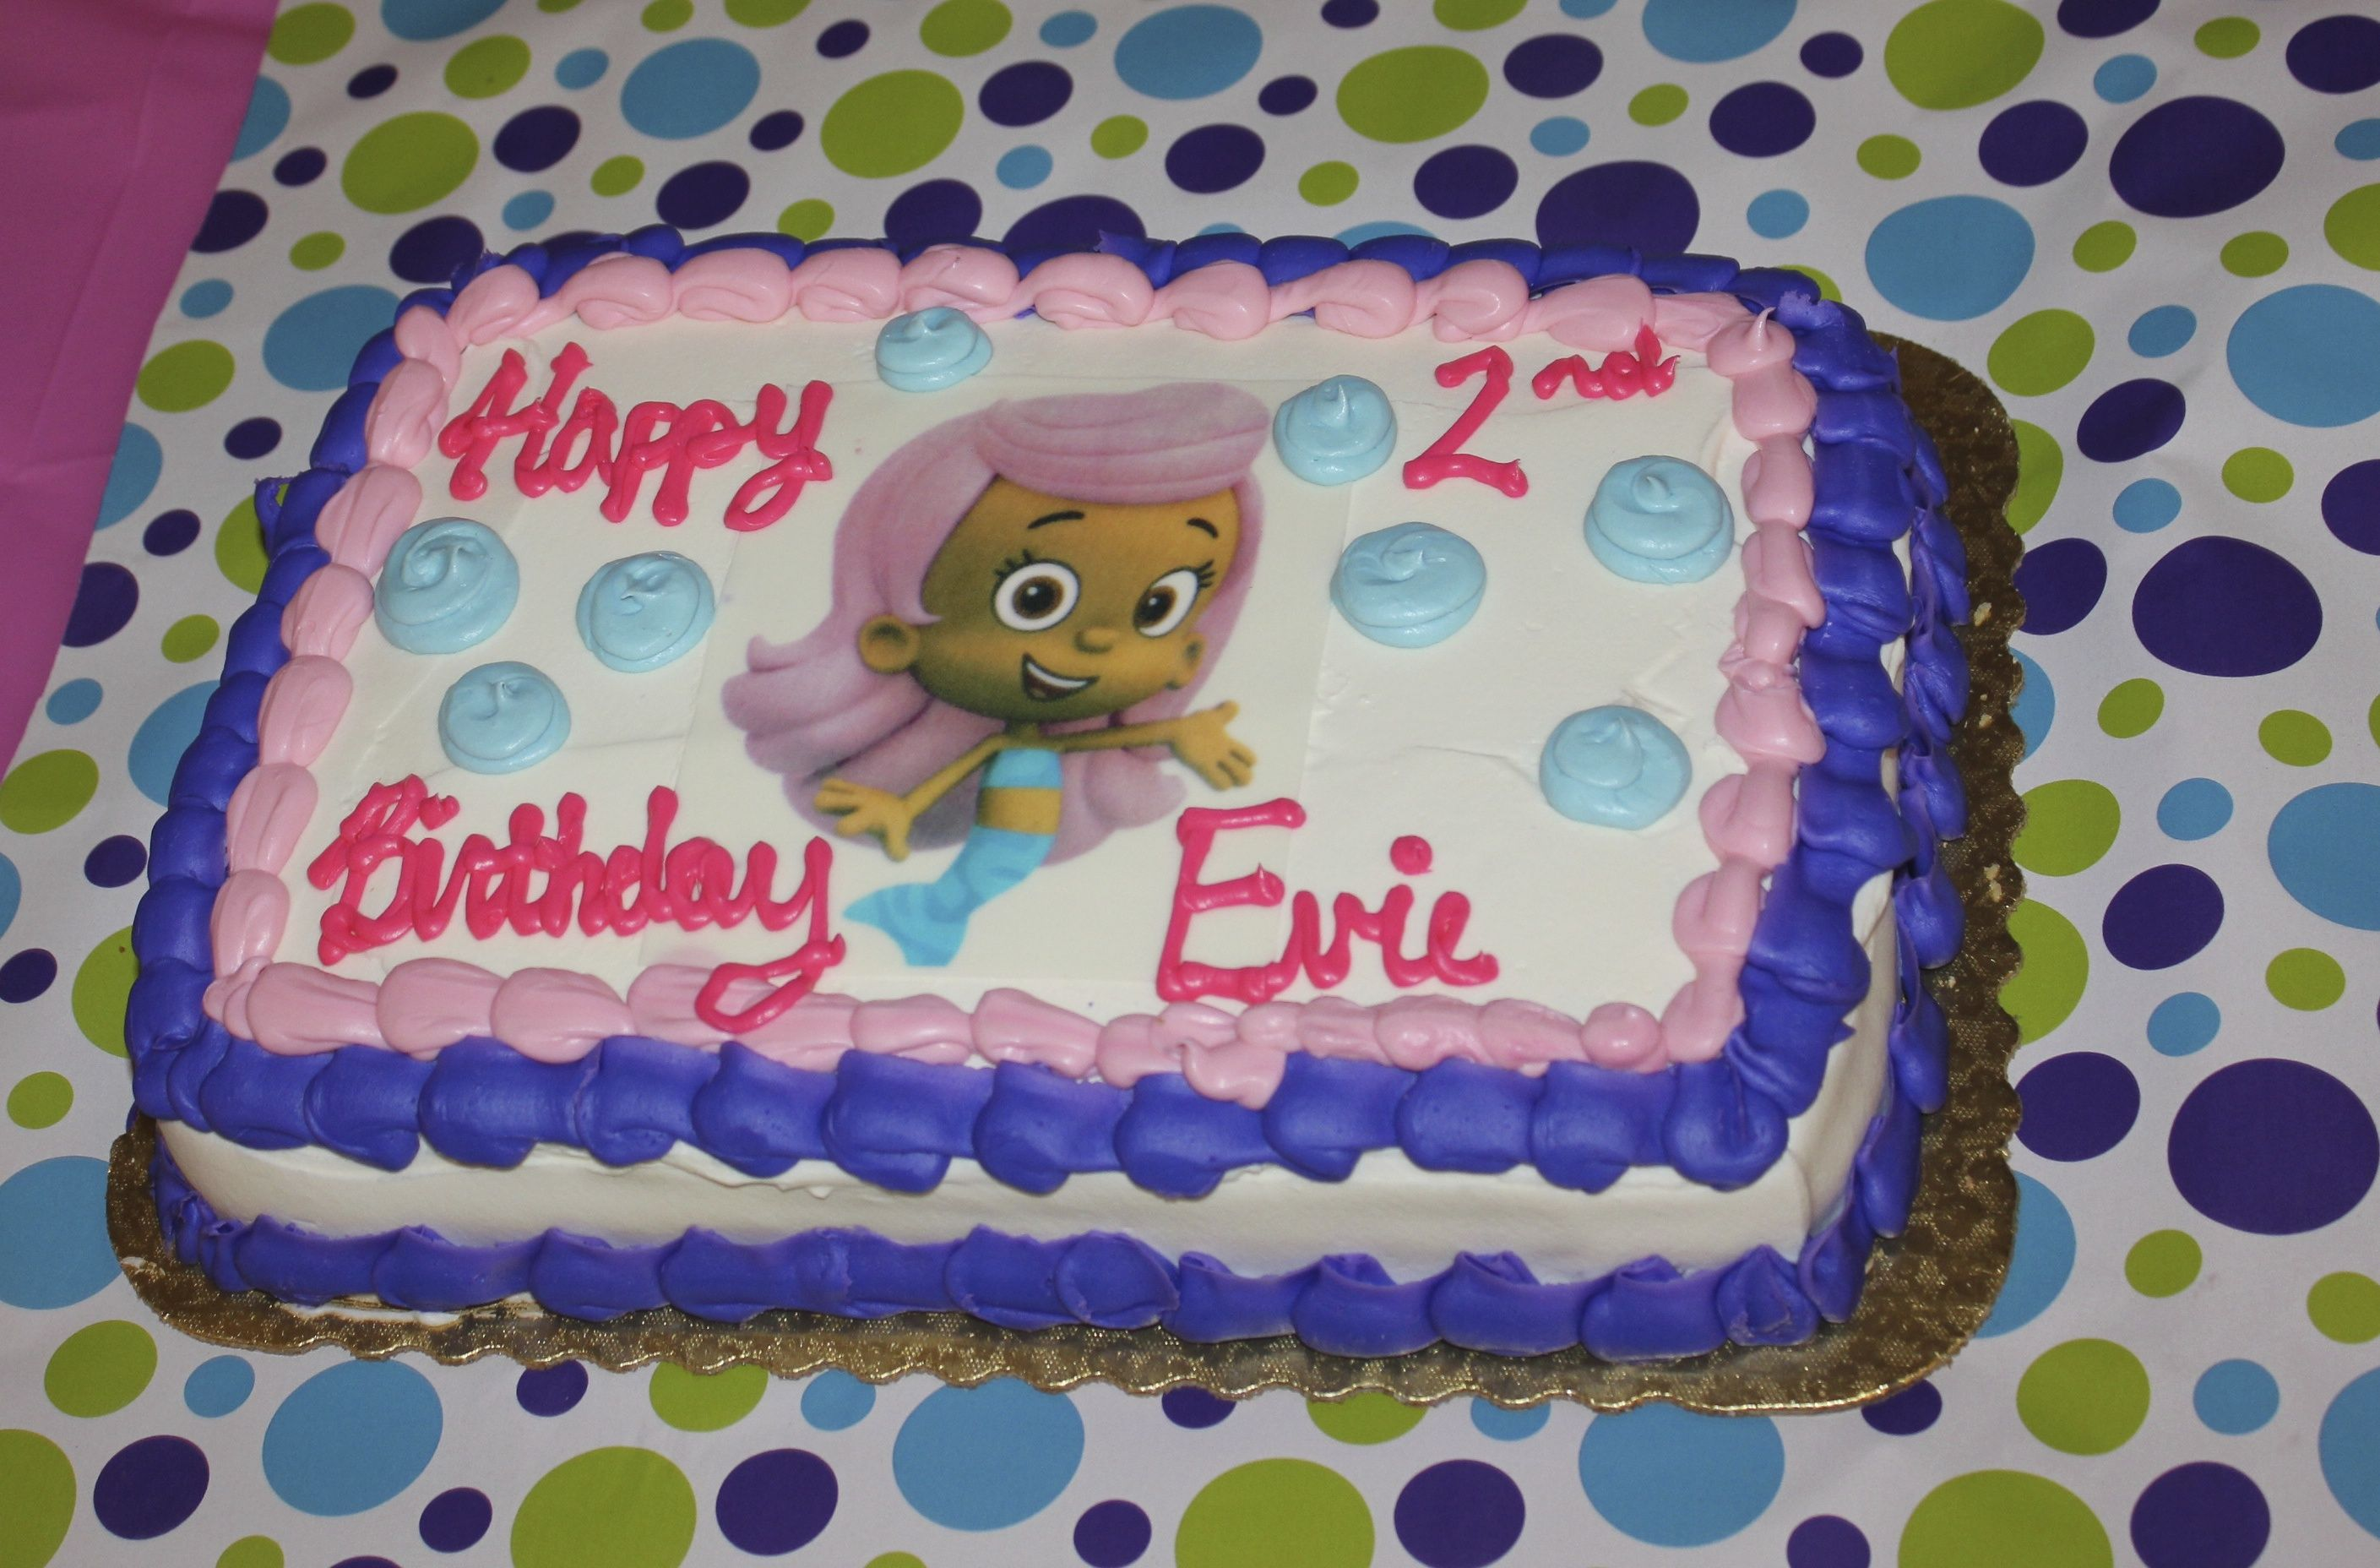 I ordered the cake from wegmans it turned out great Evies